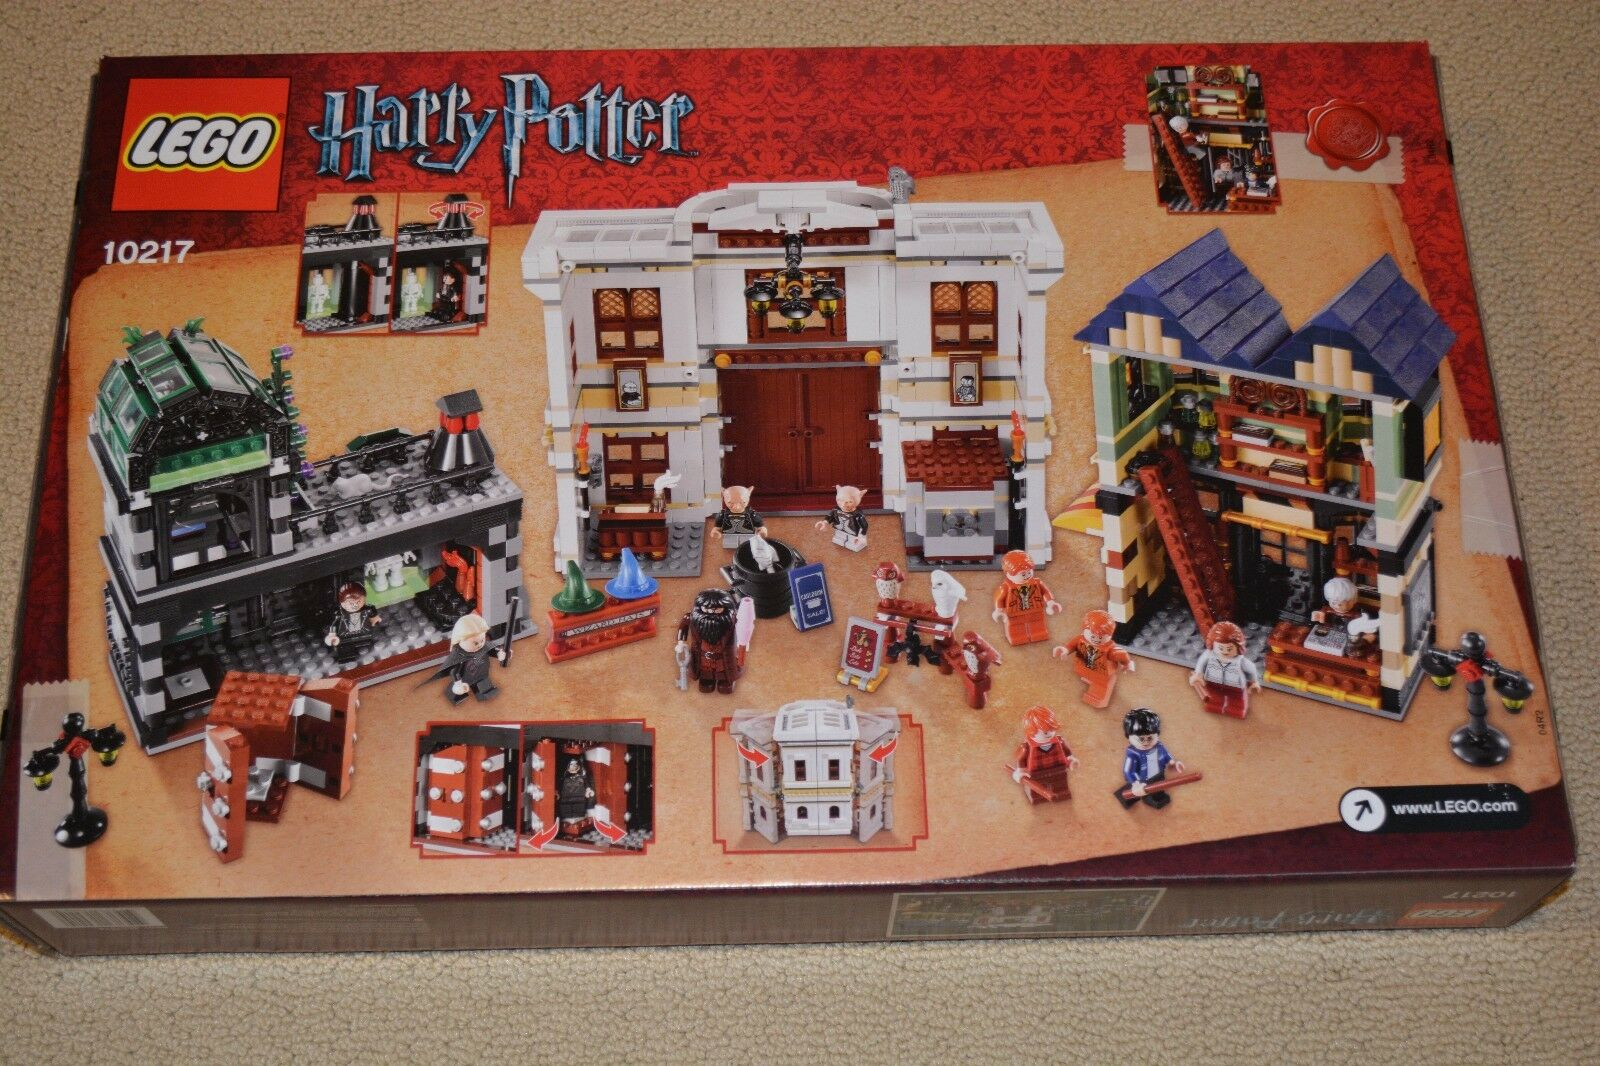 LEGO 10217 HARRY POTTER DIAGON ALLEY - - - BRAND NEW, FACTORY SEALED  9f26be